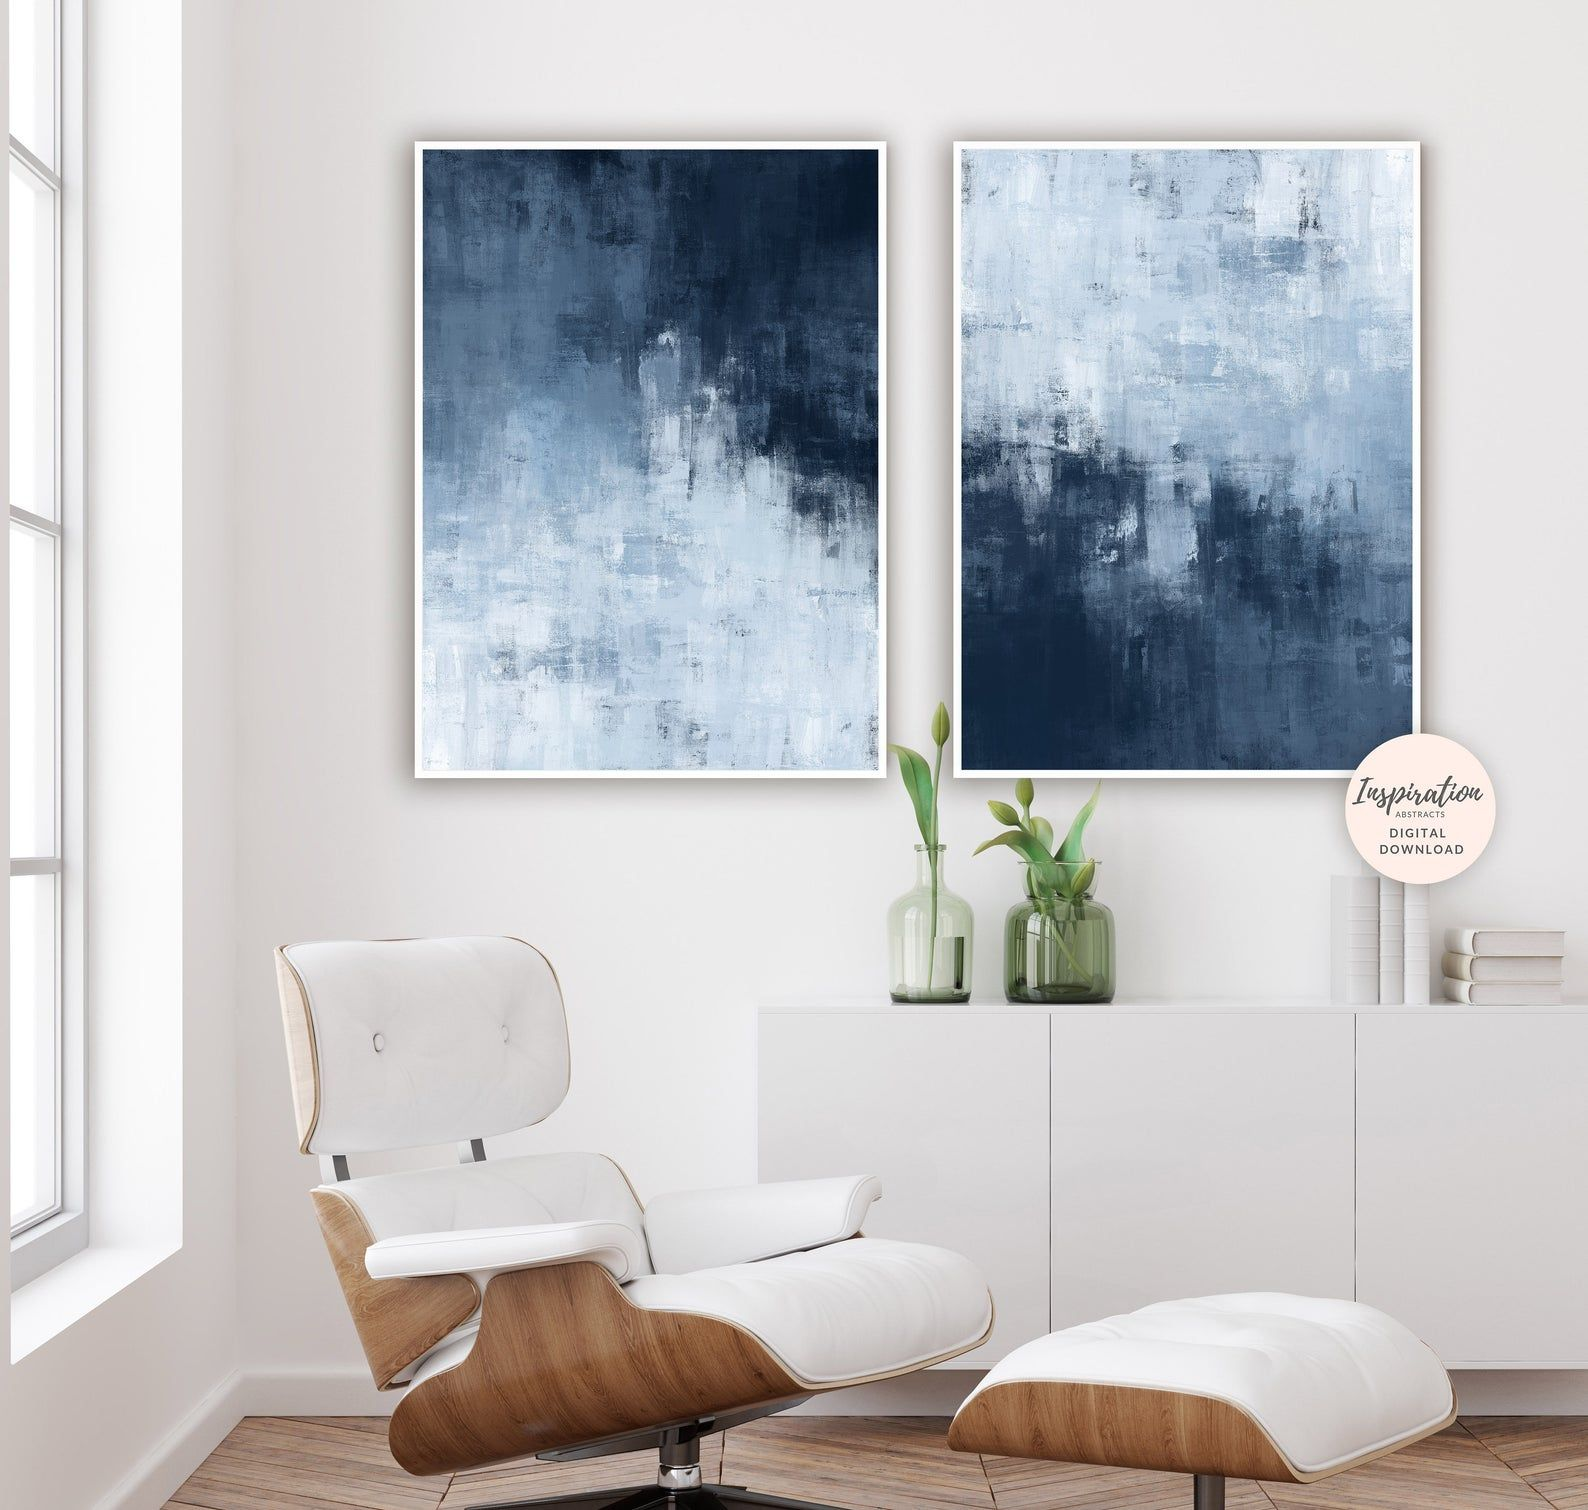 Navy Abstract Art Set Of Two Prints Large Wall Art Etsy In 2021 Living Room Art Wall Art Living Room Artwork For Living Room